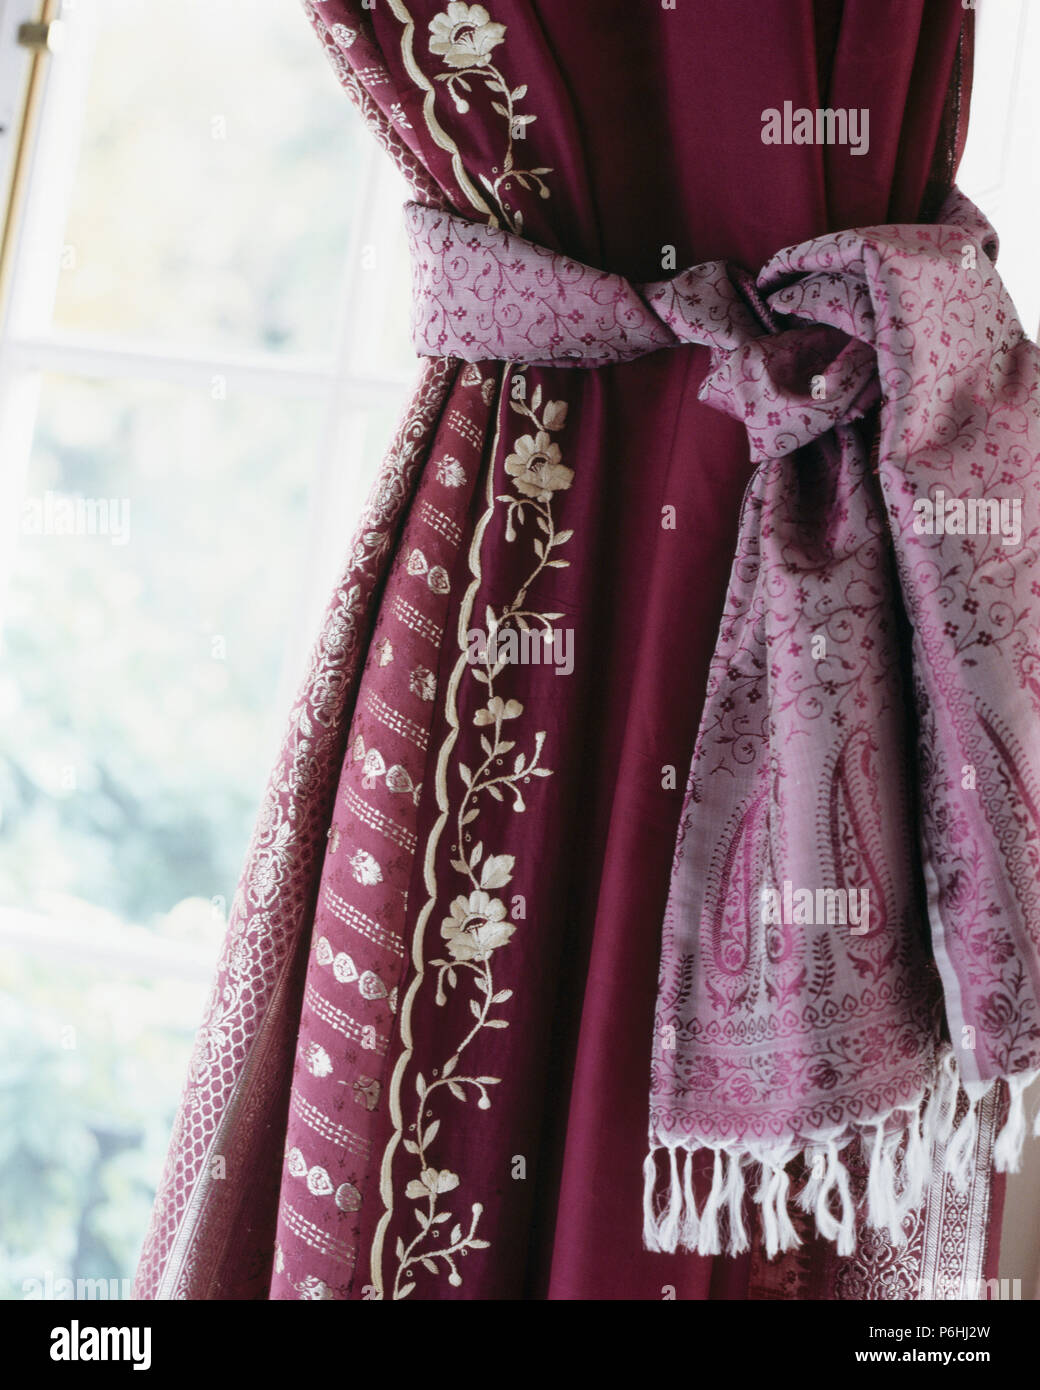 Close-up of red silk curtain with embroidered edging and mauve silk tie-back - Stock Image